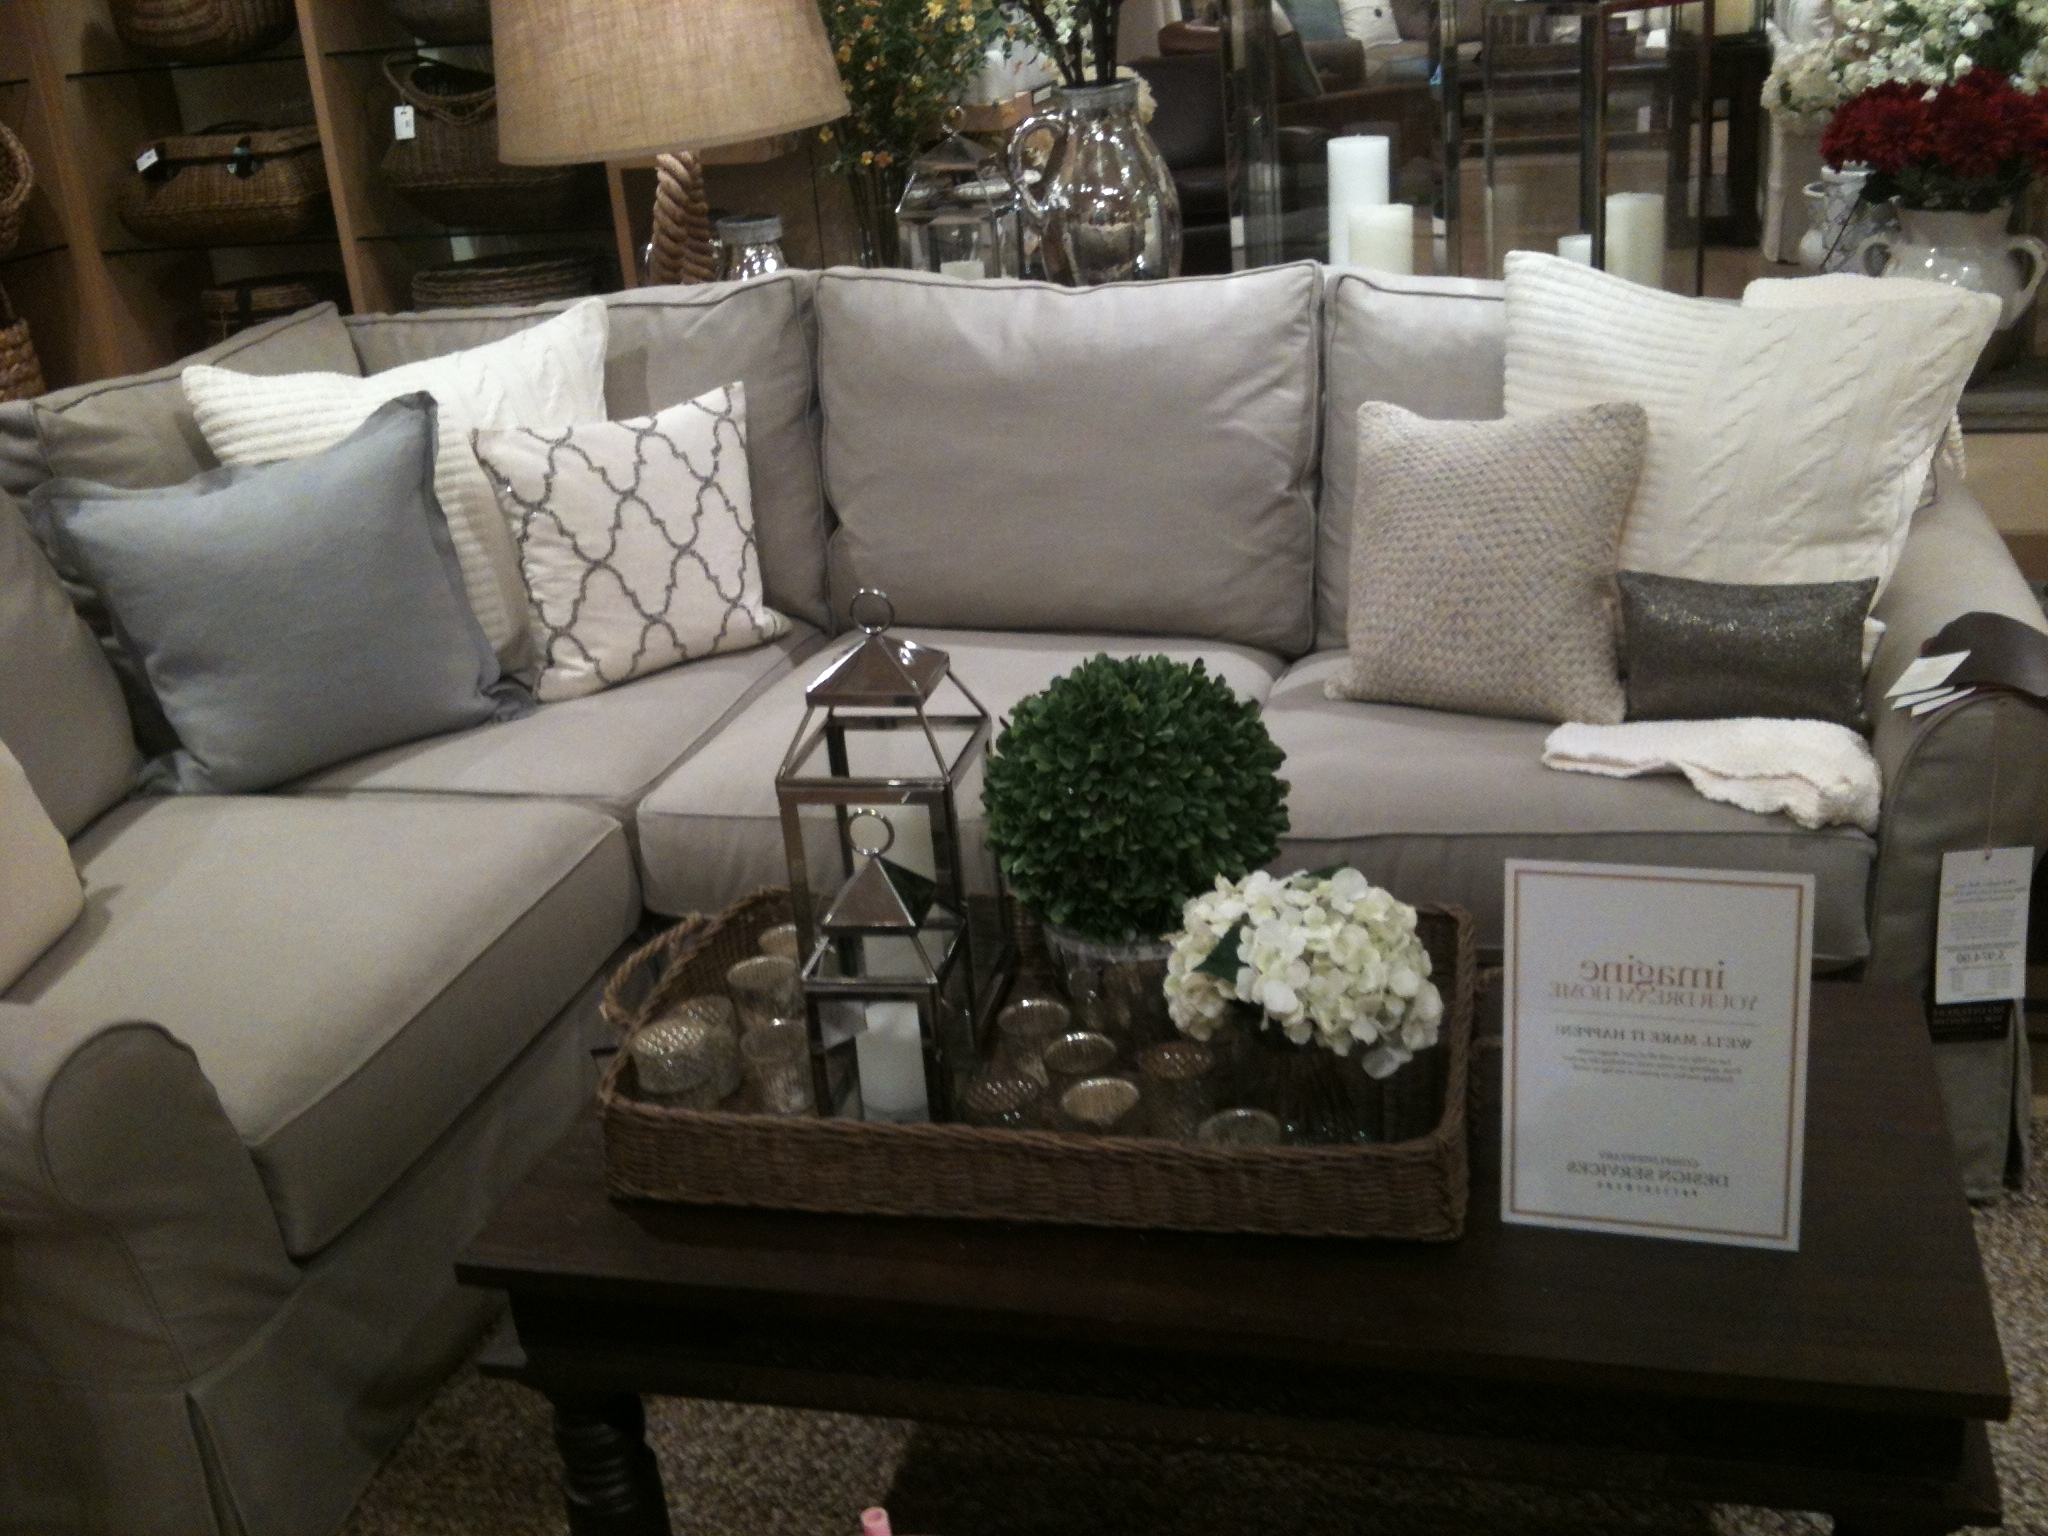 Cozy Sectional Sofas Pottery Barn 69 For Your Sectional Sofa With Pertaining To Most Popular Pottery Barn Chaises (View 8 of 15)